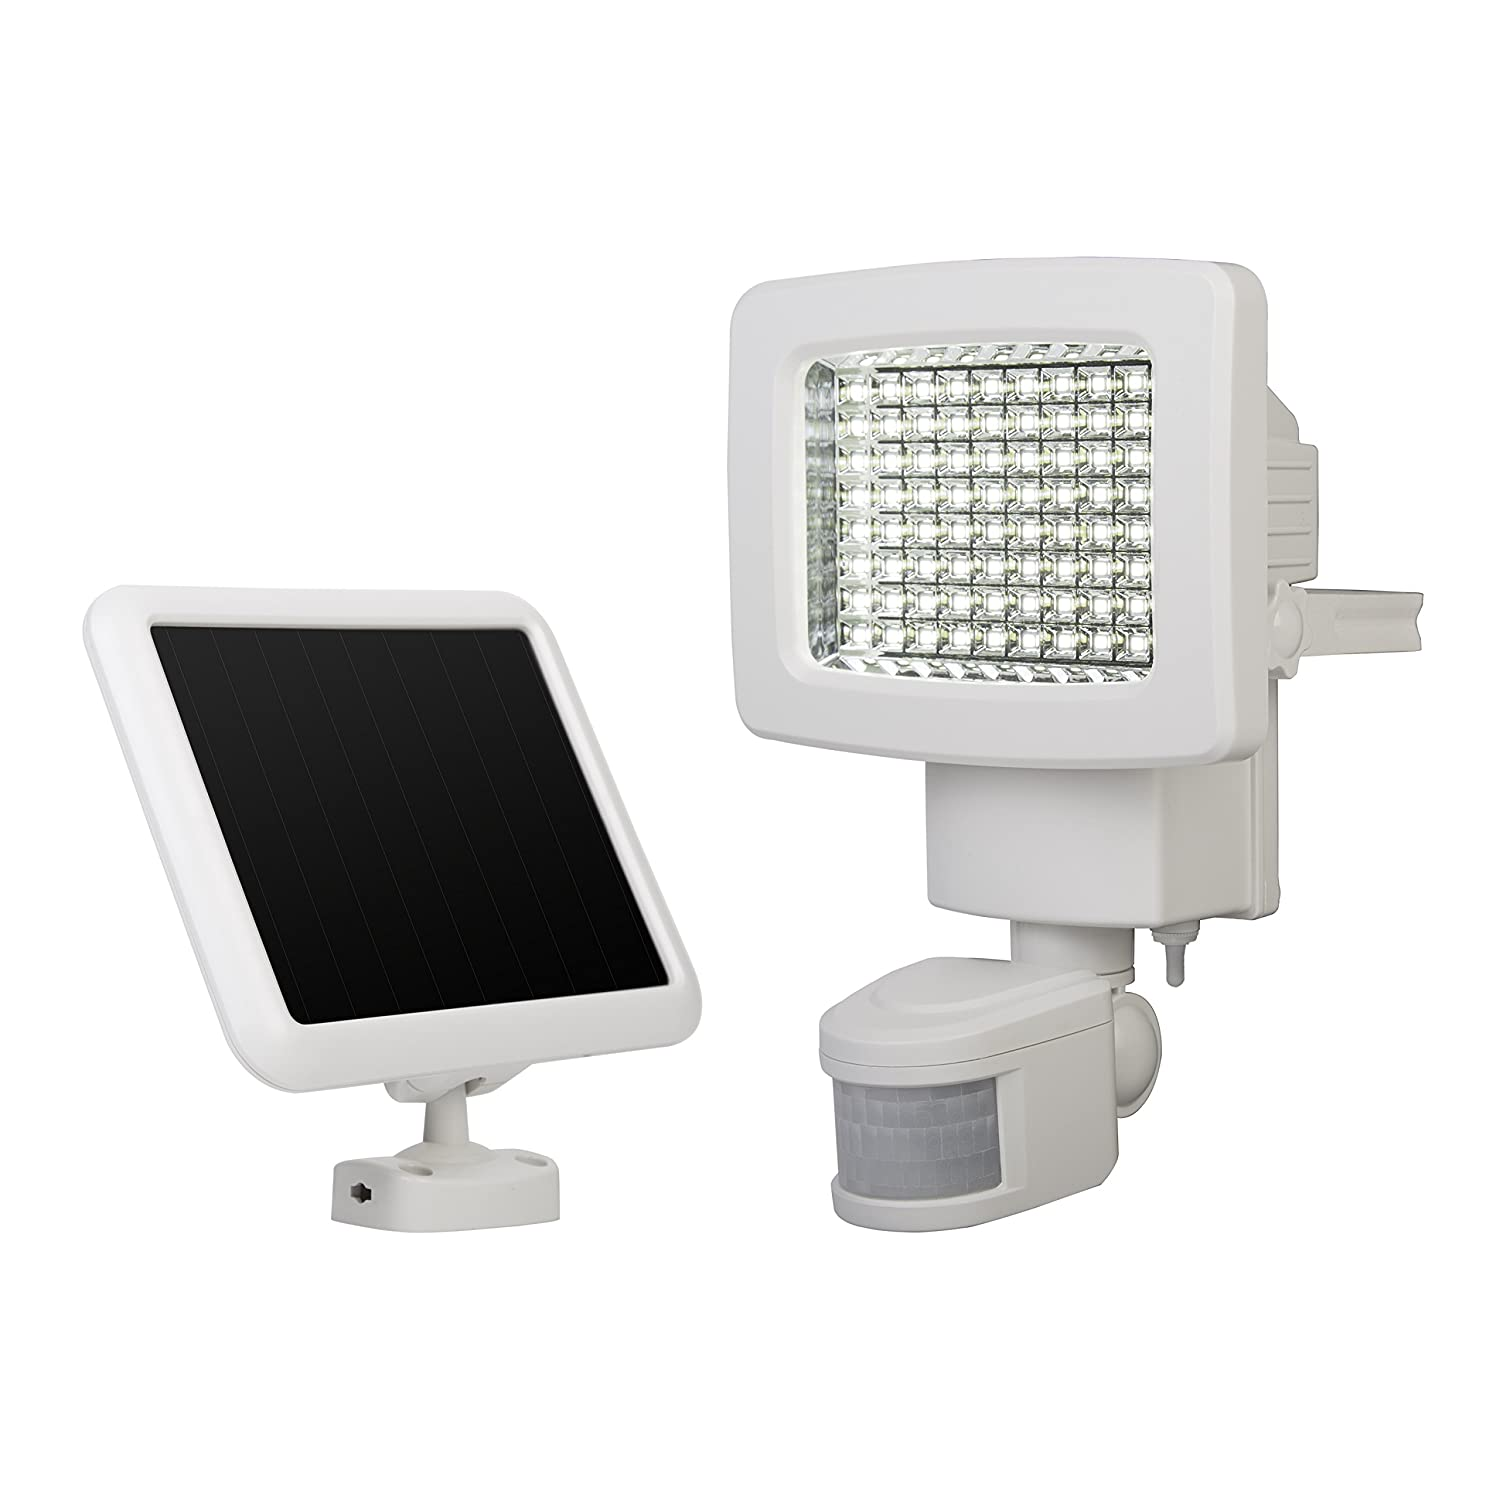 light products industries lite image lighting featured sensor capstone wireless c lights motion index